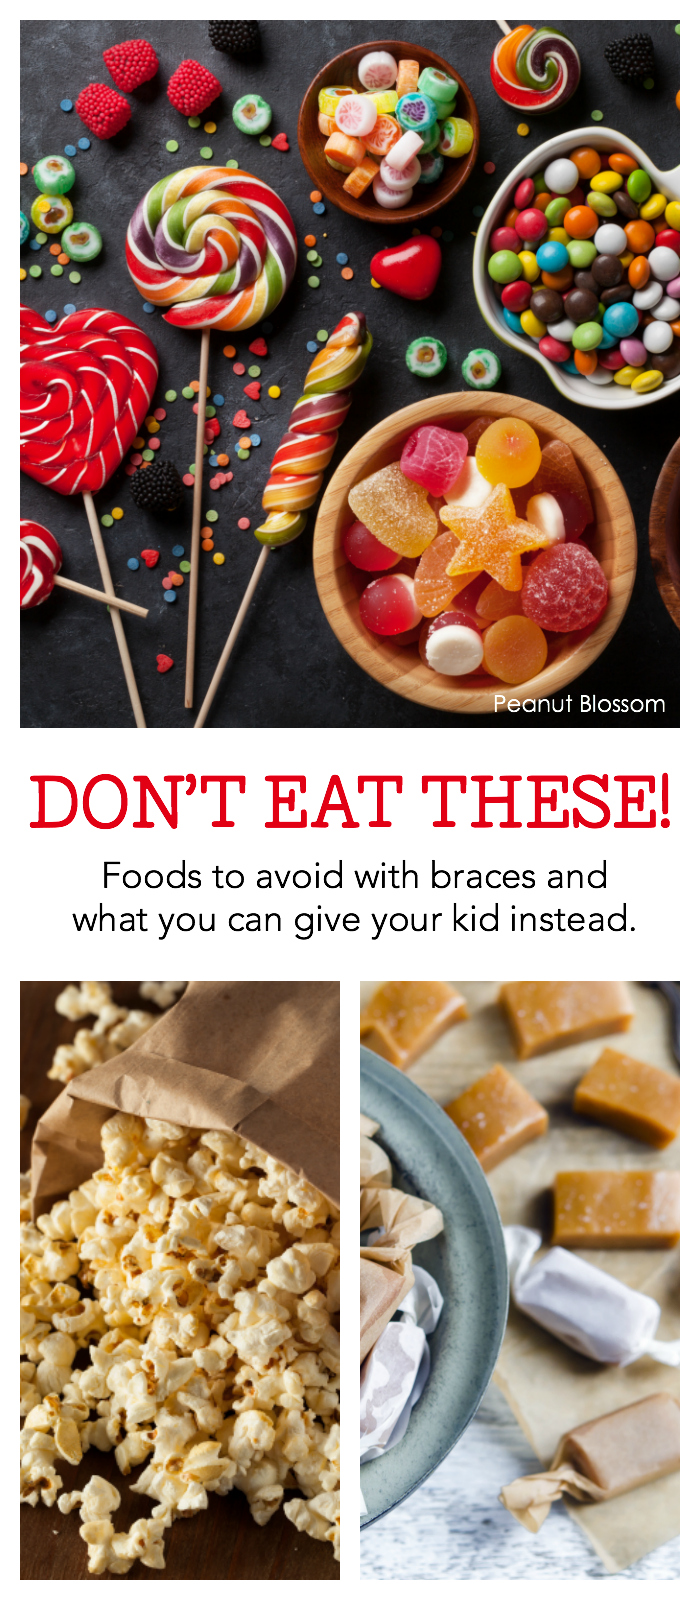 Don't eat these!: What can't you eat with braces | Hull & Coleman South Charlotte orthodontists